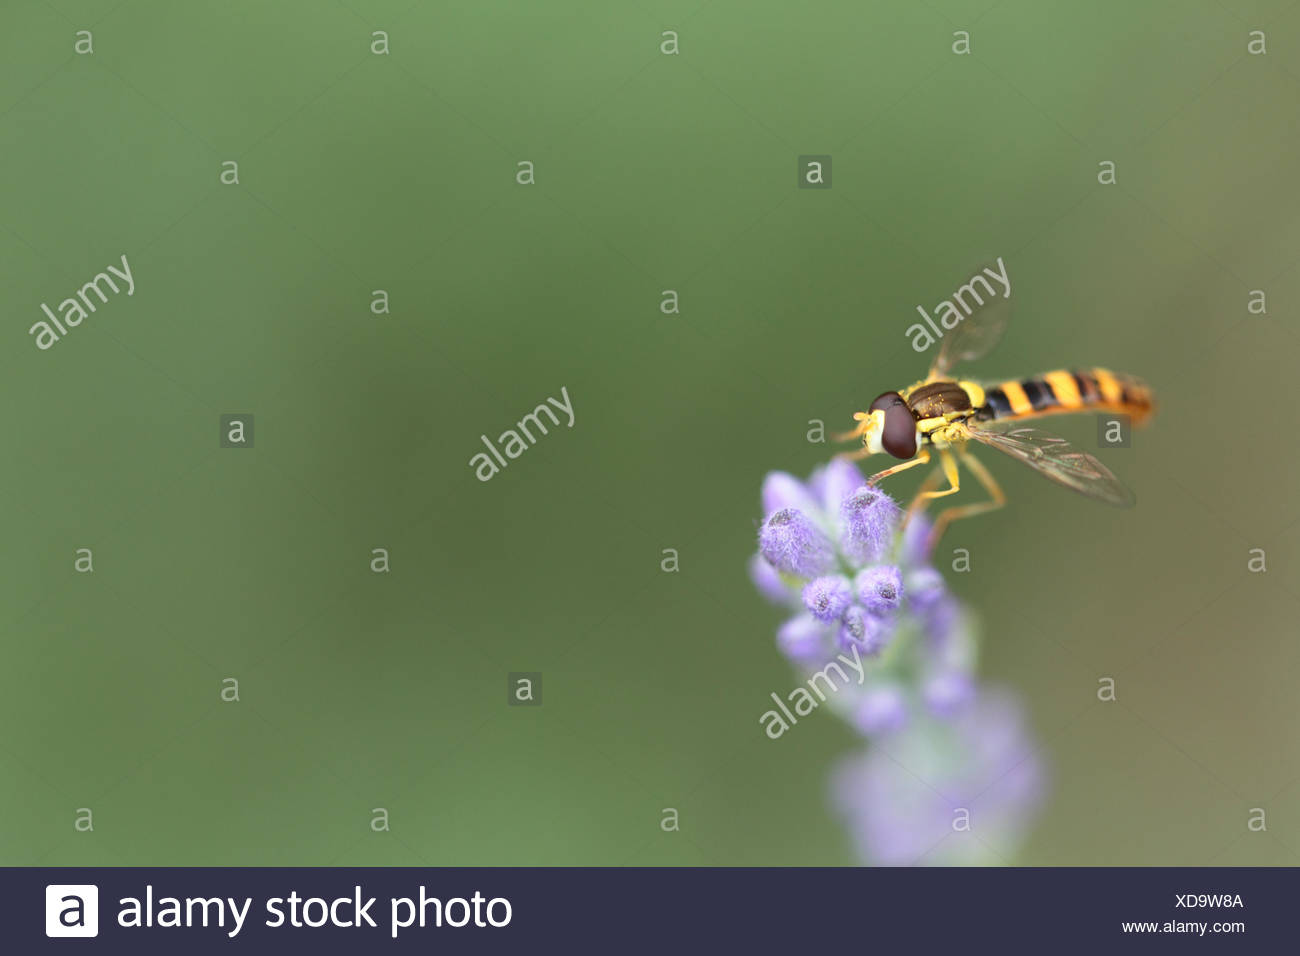 Hoverflies, sometimes called flower flies or syrphid flies, make up the insect family Syrphidae. They are often seen hovering or nectaring at flowers. This one is on a lavender flower, Lavandula angustifolia. - Stock Image